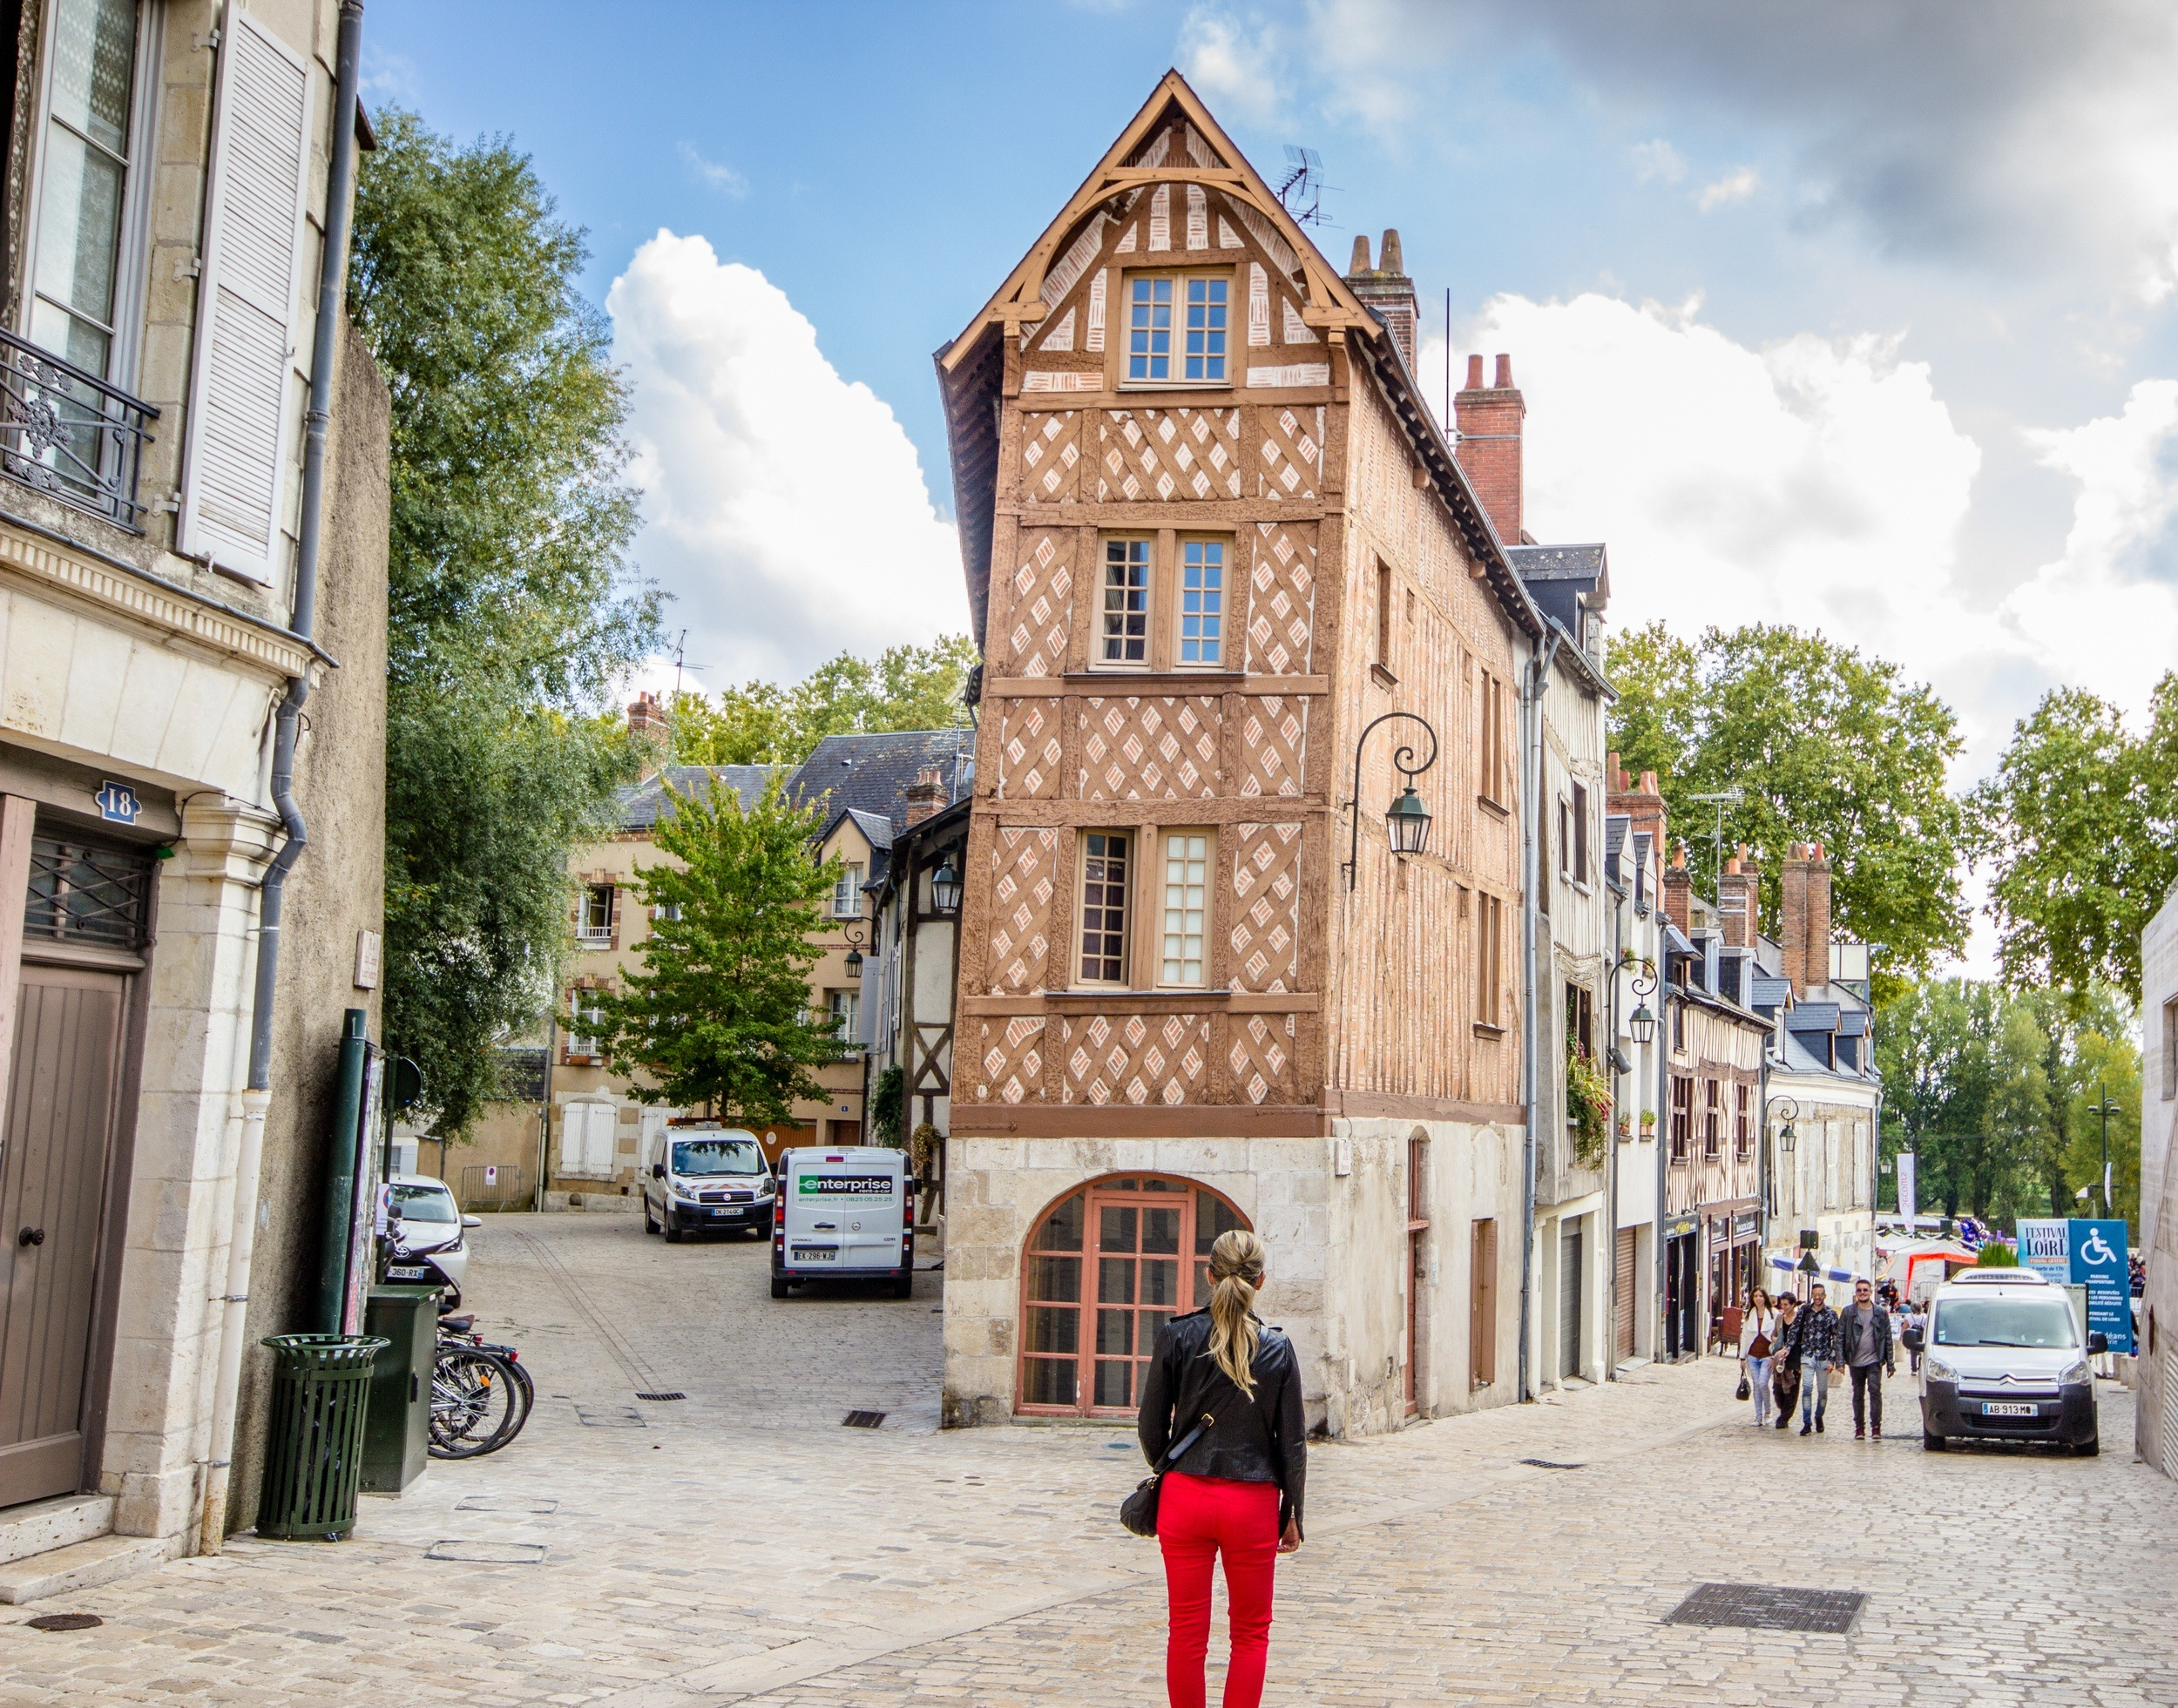 Things to do in Orleans, France